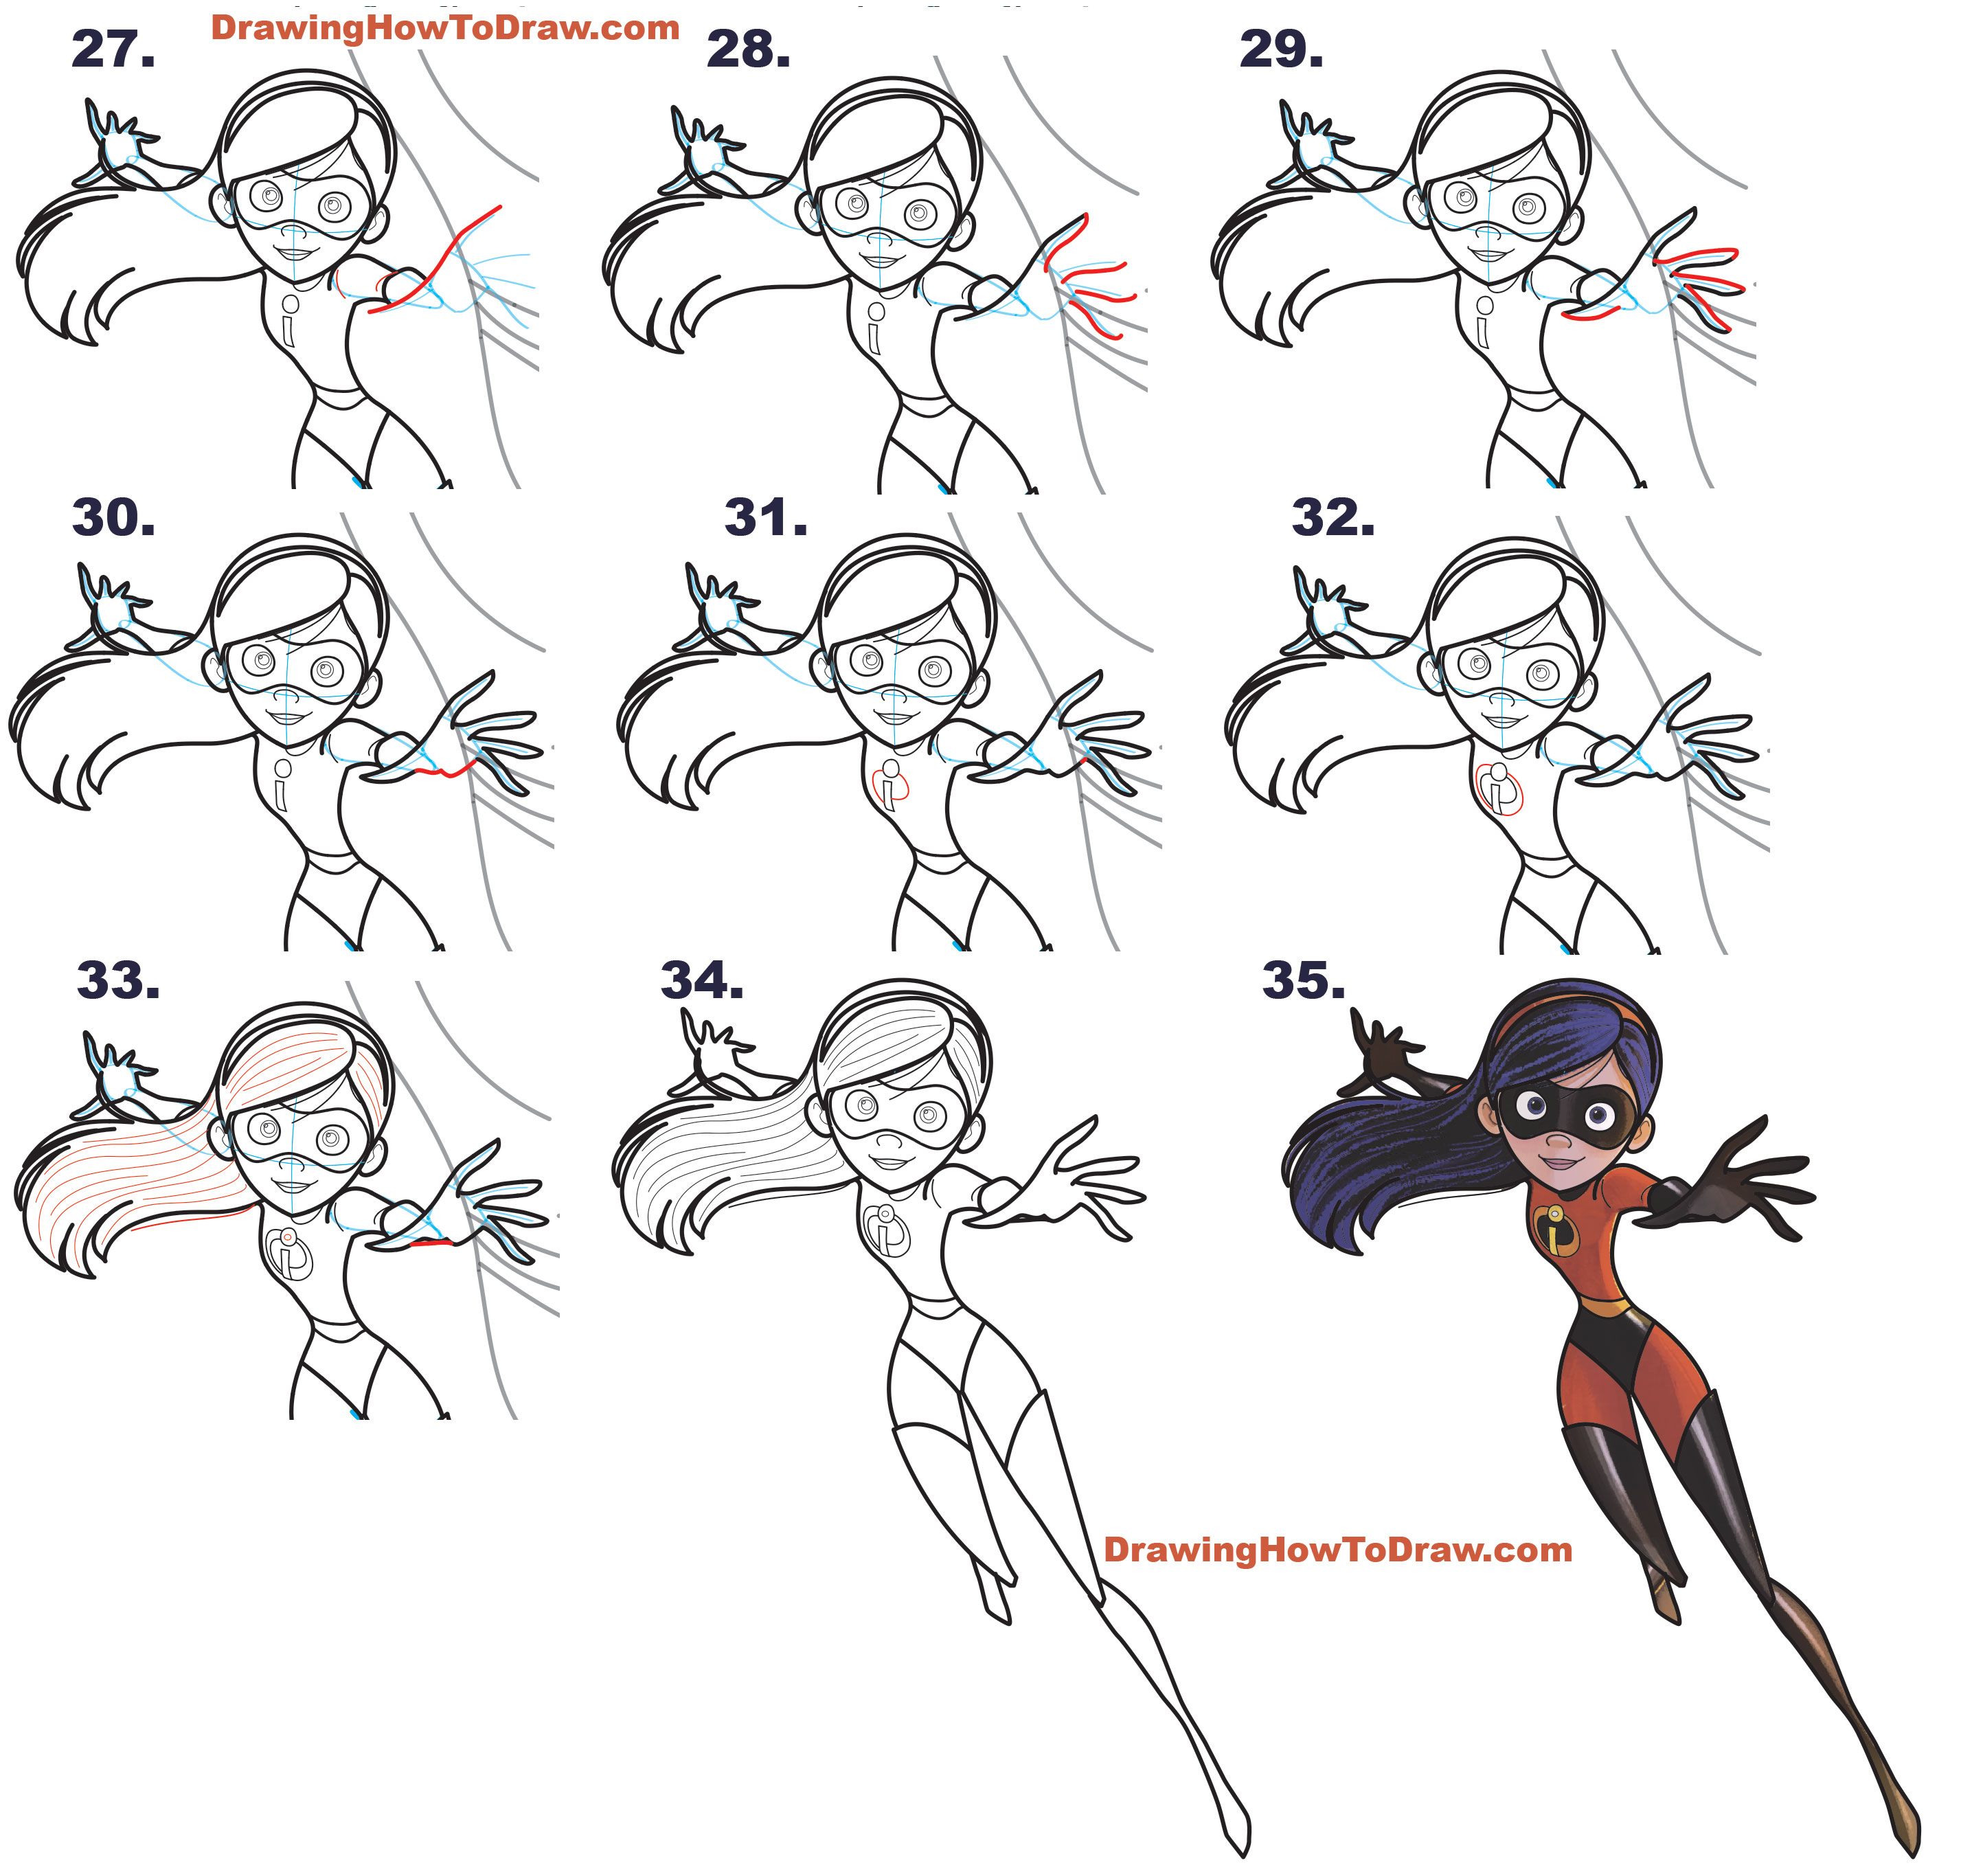 How to Draw Violet, the Daughter, from The Incredibles (Part 3 of Drawing The Incredibles 2 Family) Simple Steps Lesson